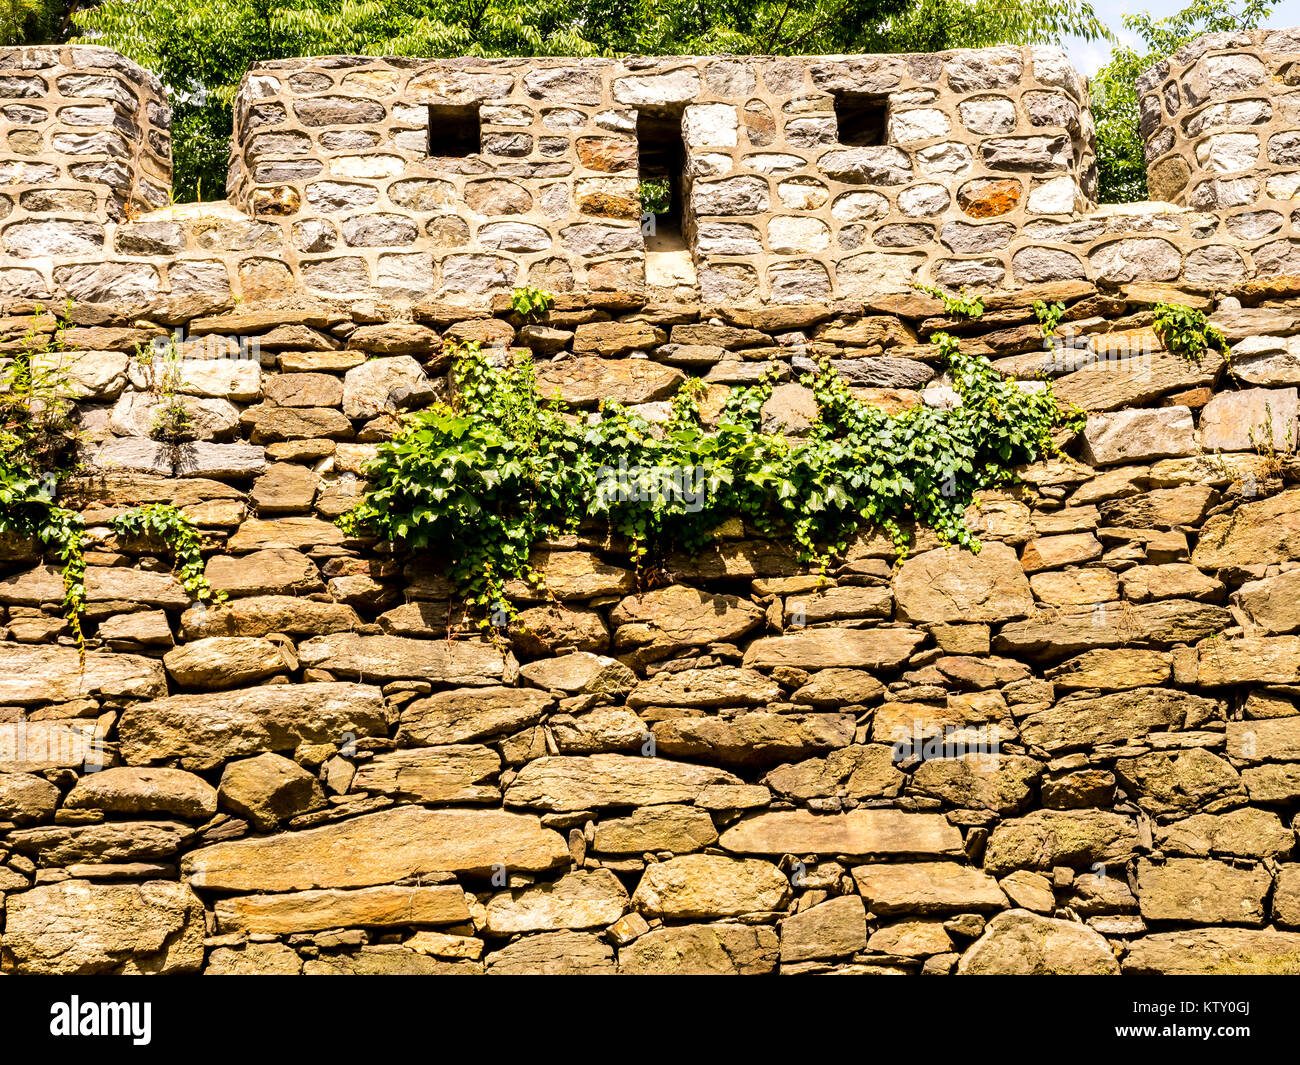 Old fortress wall at the Namsan Park in Seoul, South Korea - Stock Image